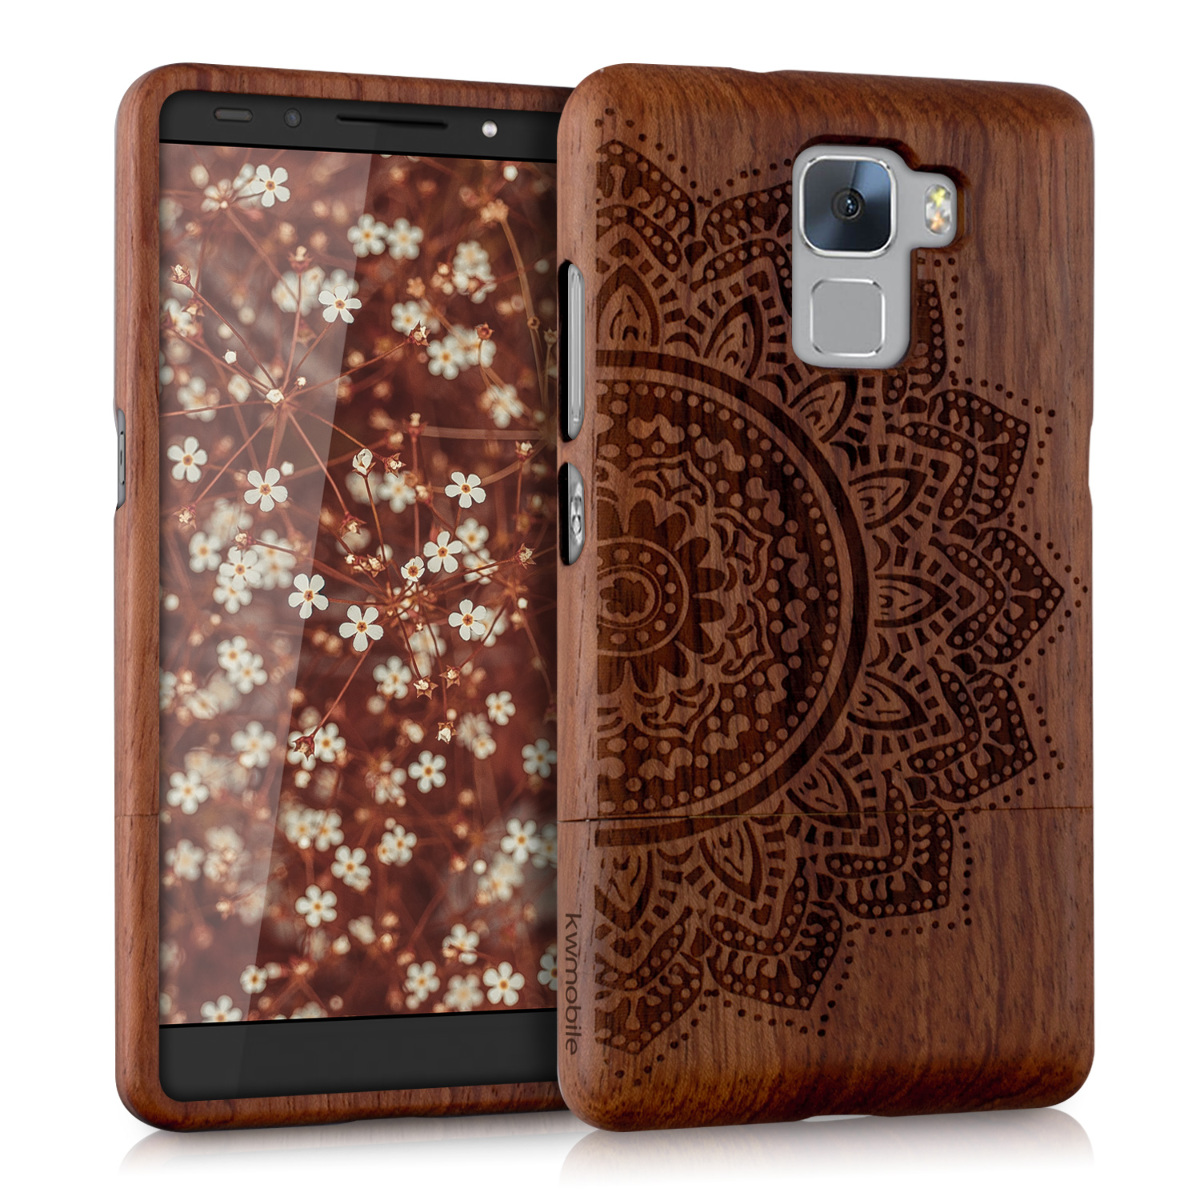 kwmobile WOOD COVER FOR HUAWEI HONOR 7 DESIGN CASE BACK HARD NATURAL MOBILE